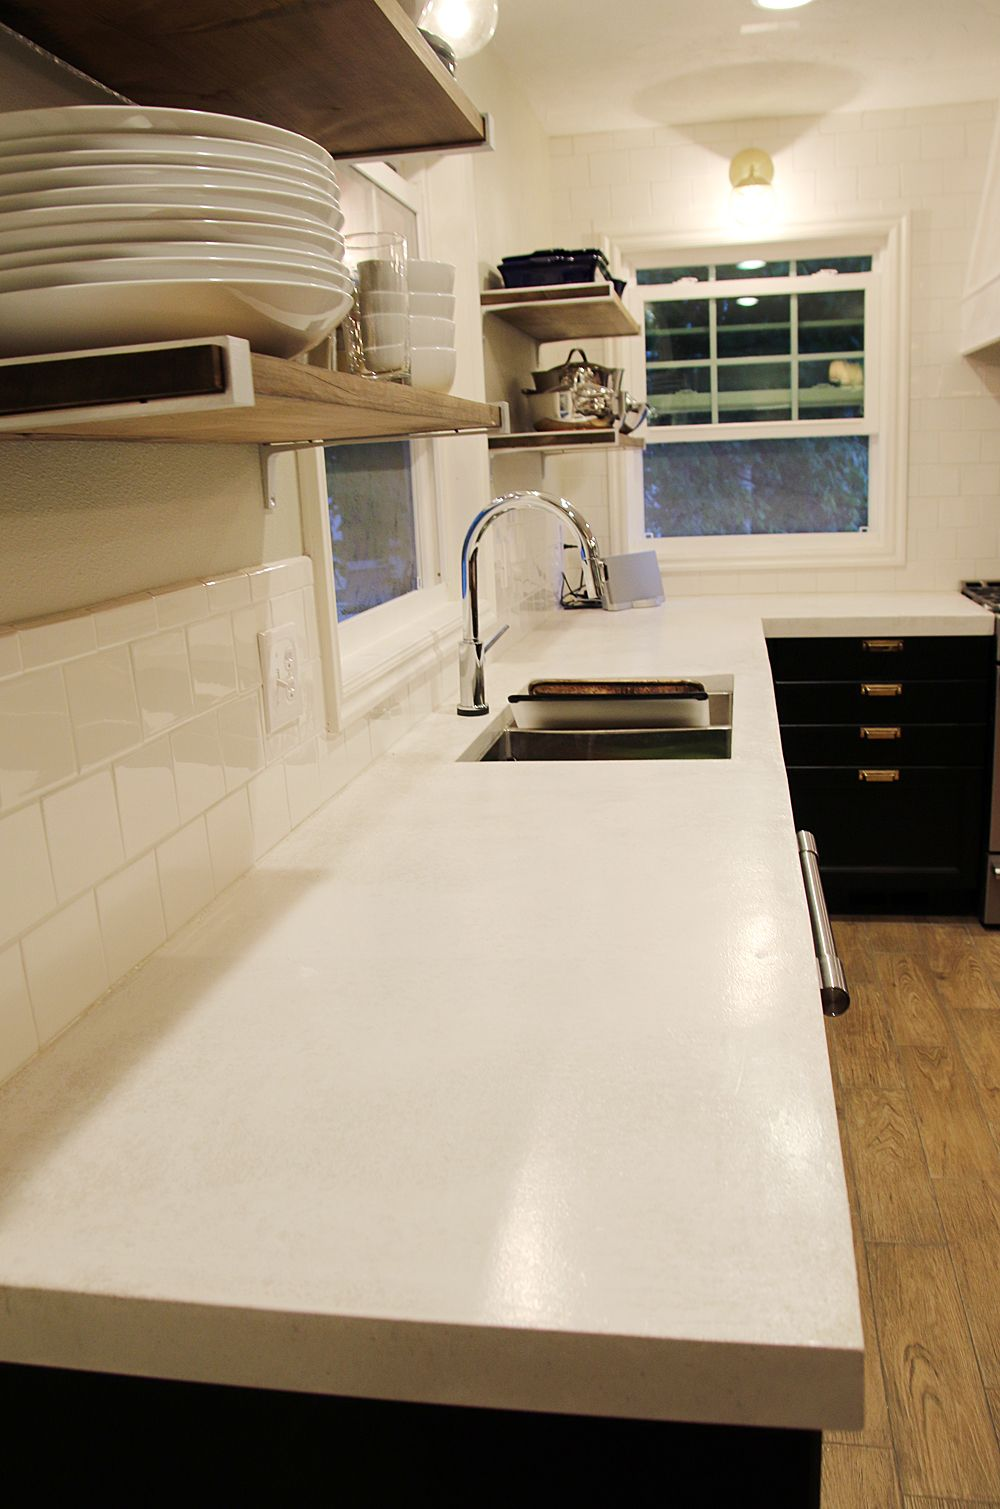 the countertop room counters by flooring options cost best kitchens kitchen for standard countertops smart